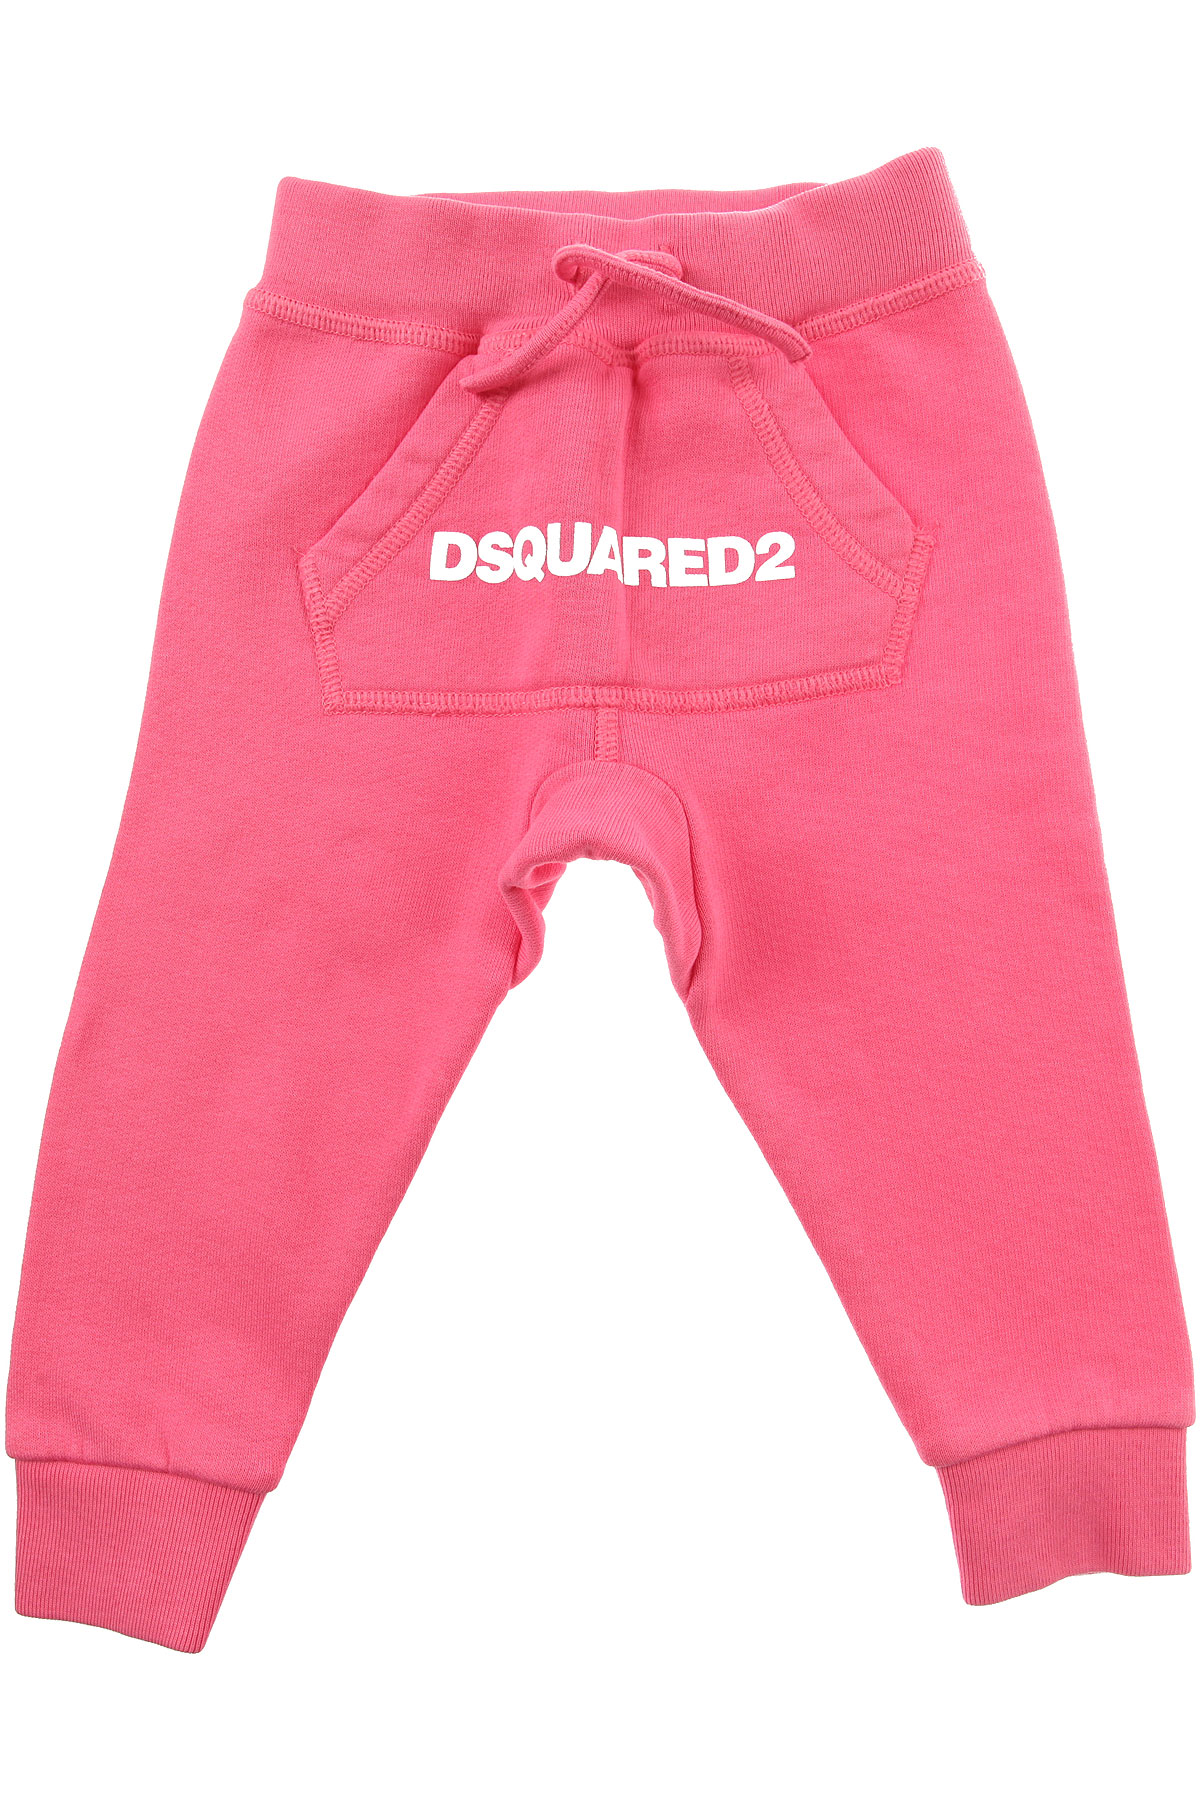 Image of Dsquared2 Baby Sweatpants for Girls, Pink, Cotton, 2017, 12M 18M 2Y 3Y